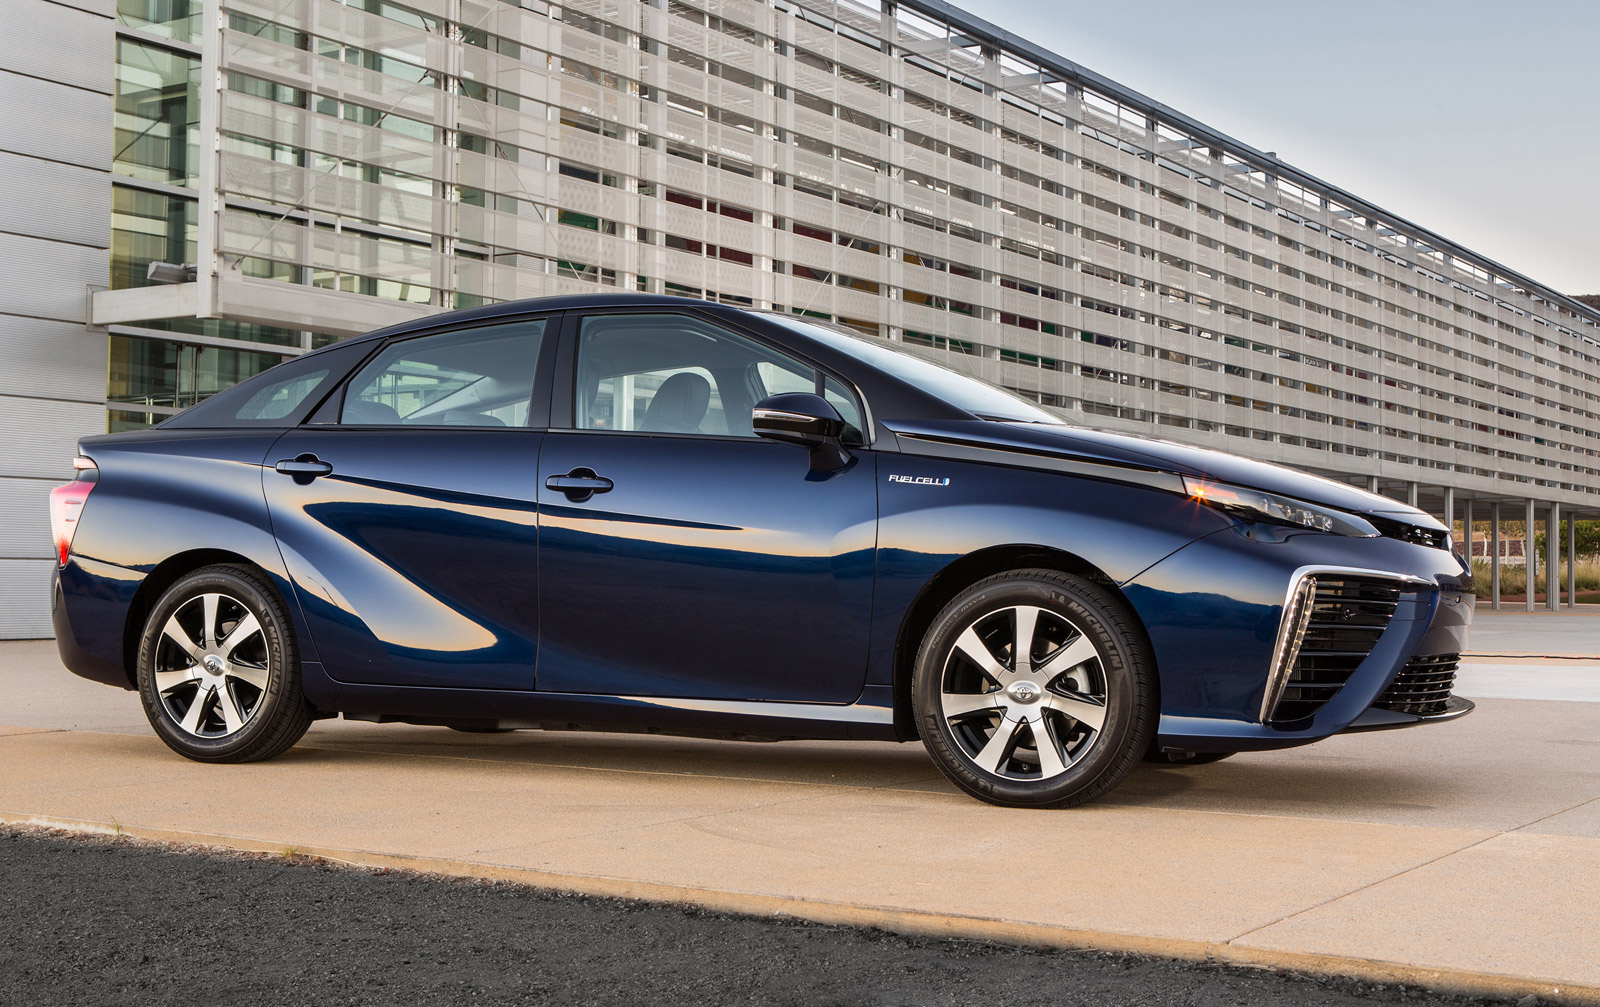 2016 Toyota Mirai Priced At $57,500, With $499 Monthly Lease